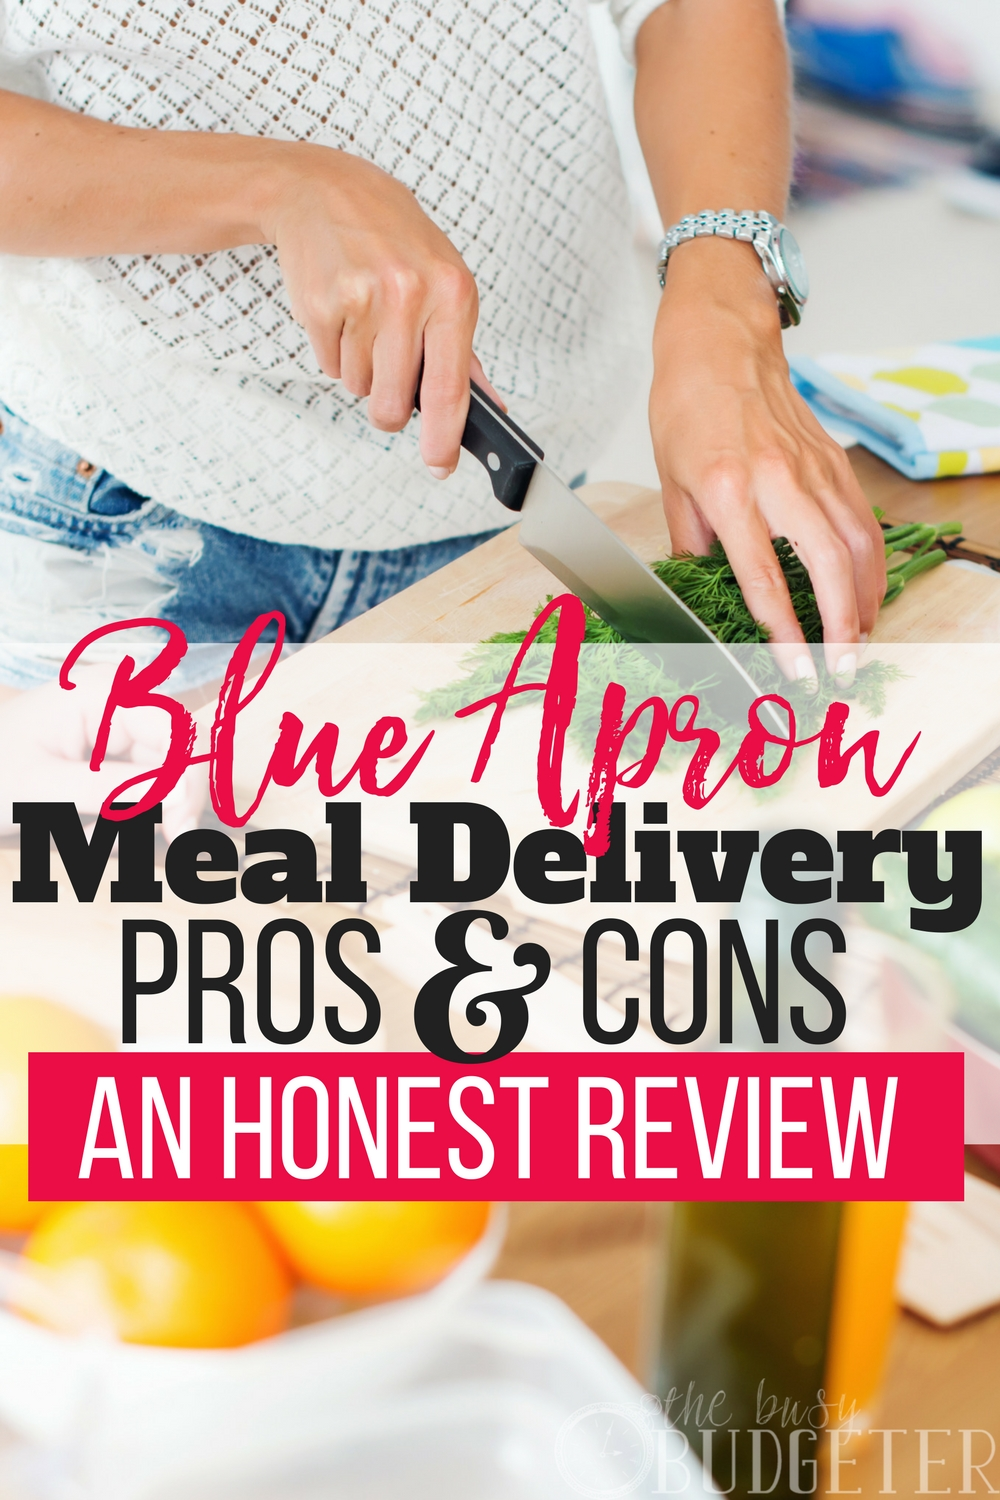 My family has been considering trying out Blue Apron meal delivery for a while now and we just weren't sure if it was right for busy families. Thank you for this honest Blue Apron review! It saved us a lot of time and money! Super helpful!